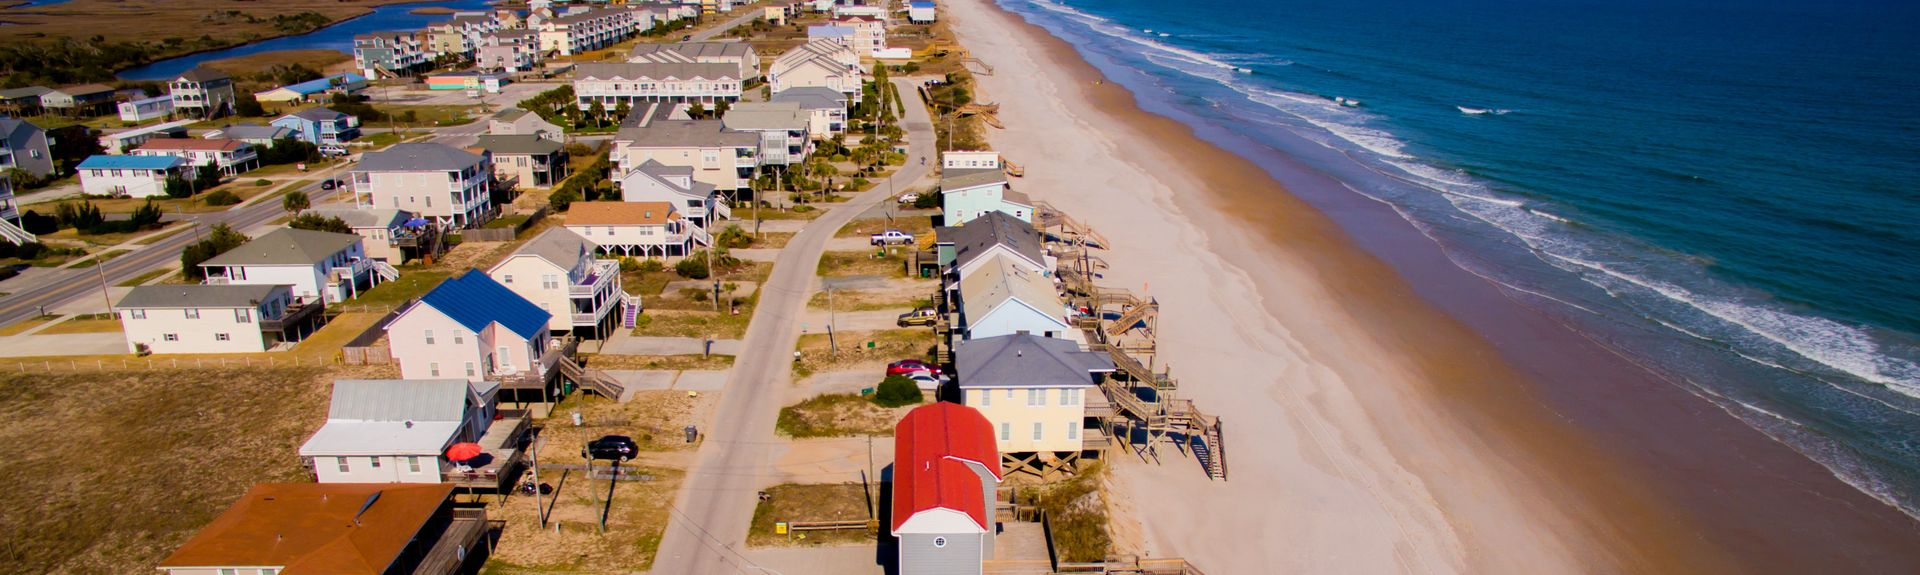 Topsail Island, US Vacation Rentals: House Rentals